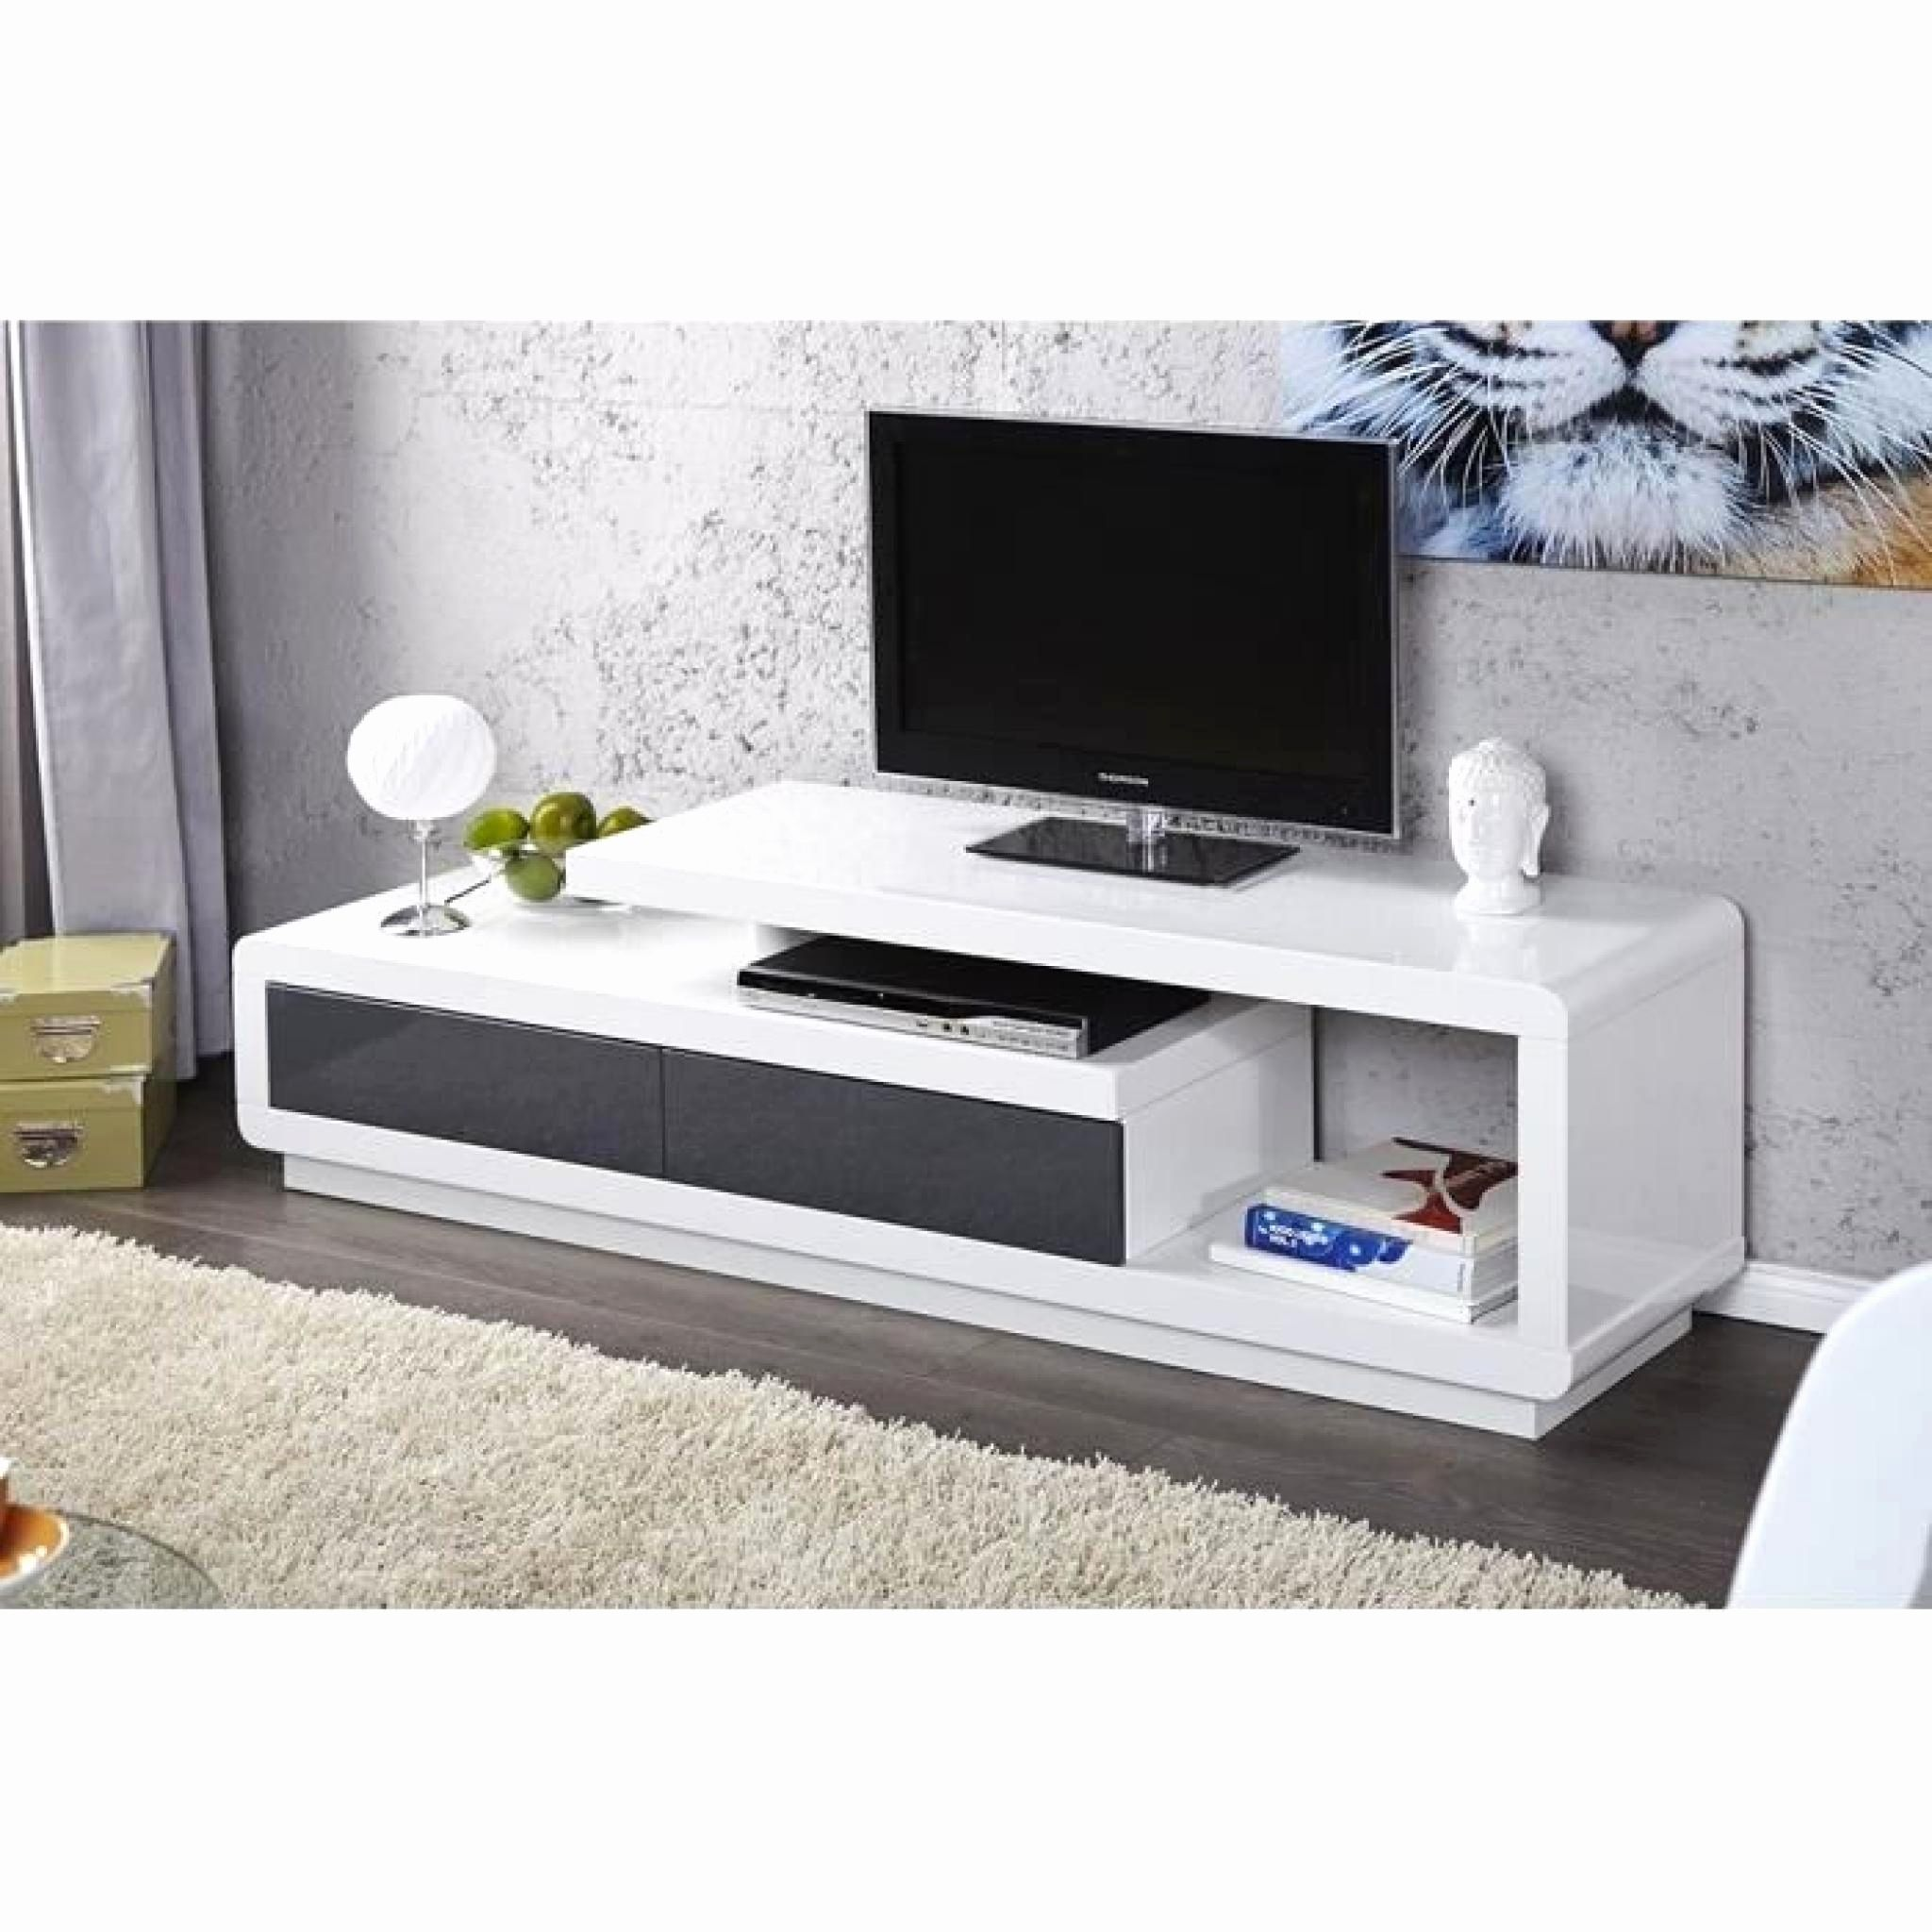 Meuble Tele Fly Awesome Meuble Tv Suspendu Conforama Perfect Meuble Tv Suspendu Conforama Tv Room Design Tv Unit Decor Tv Unit Furniture